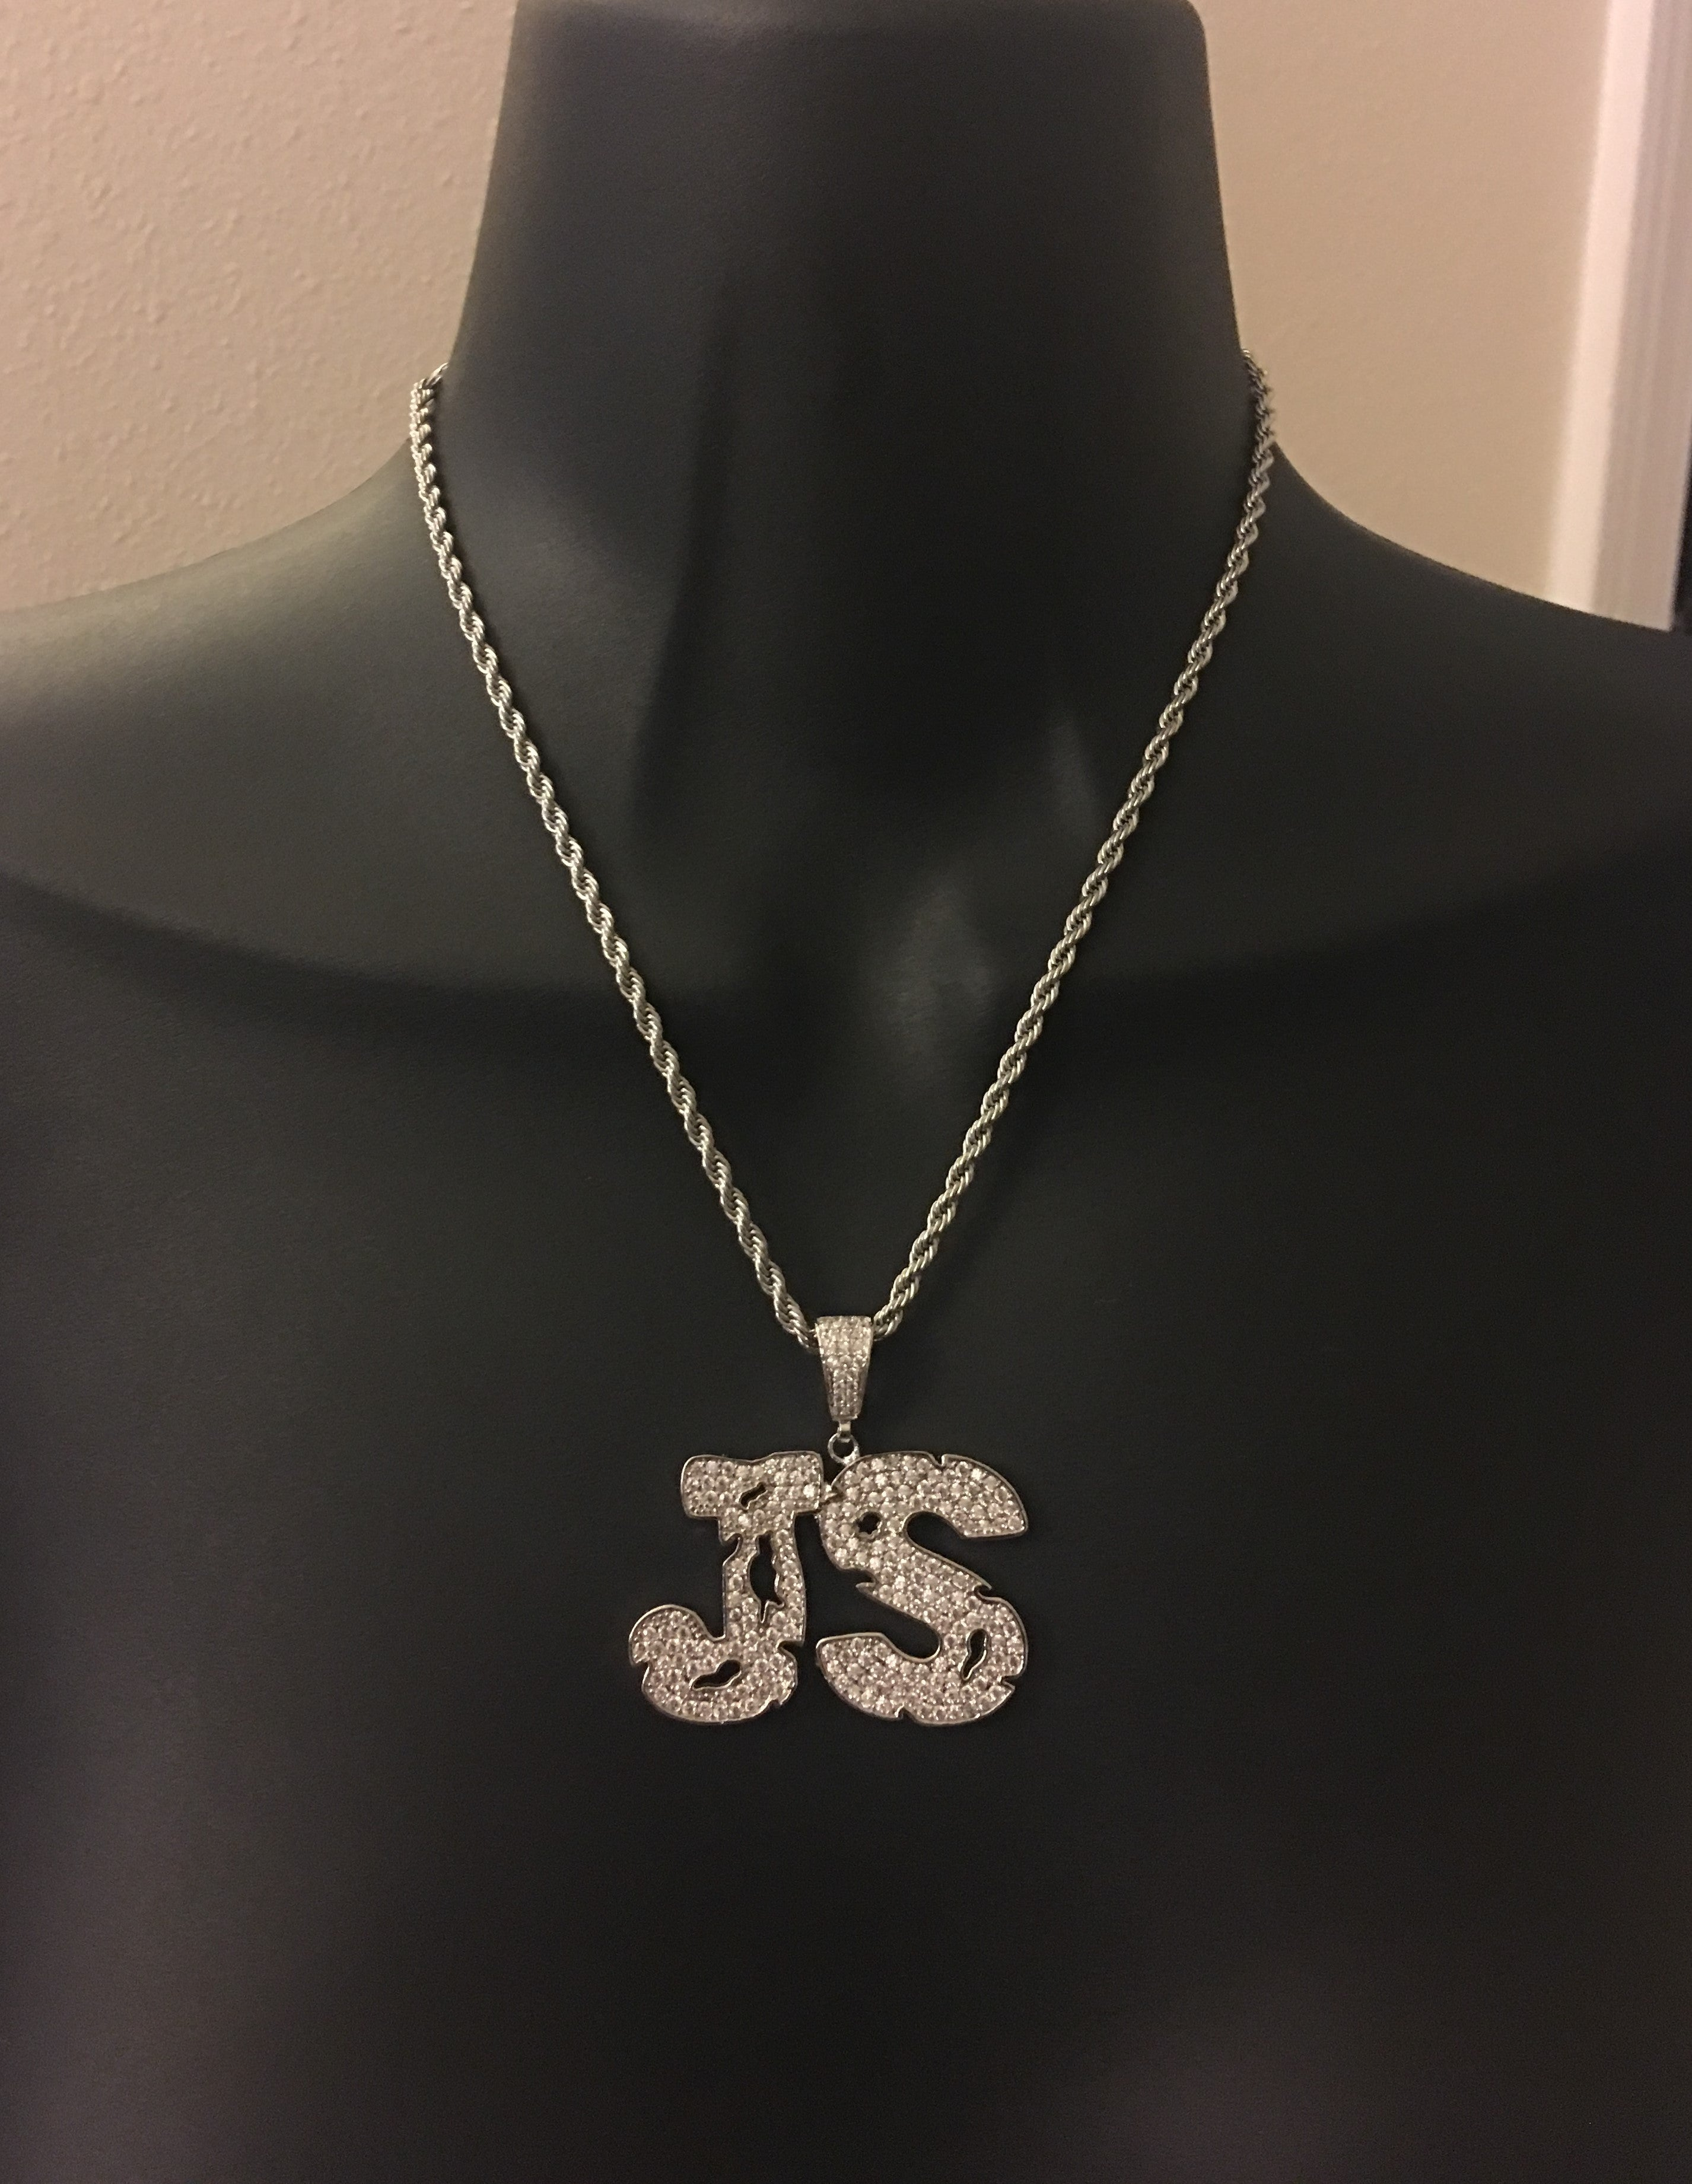 Block letters, diamond name necklace